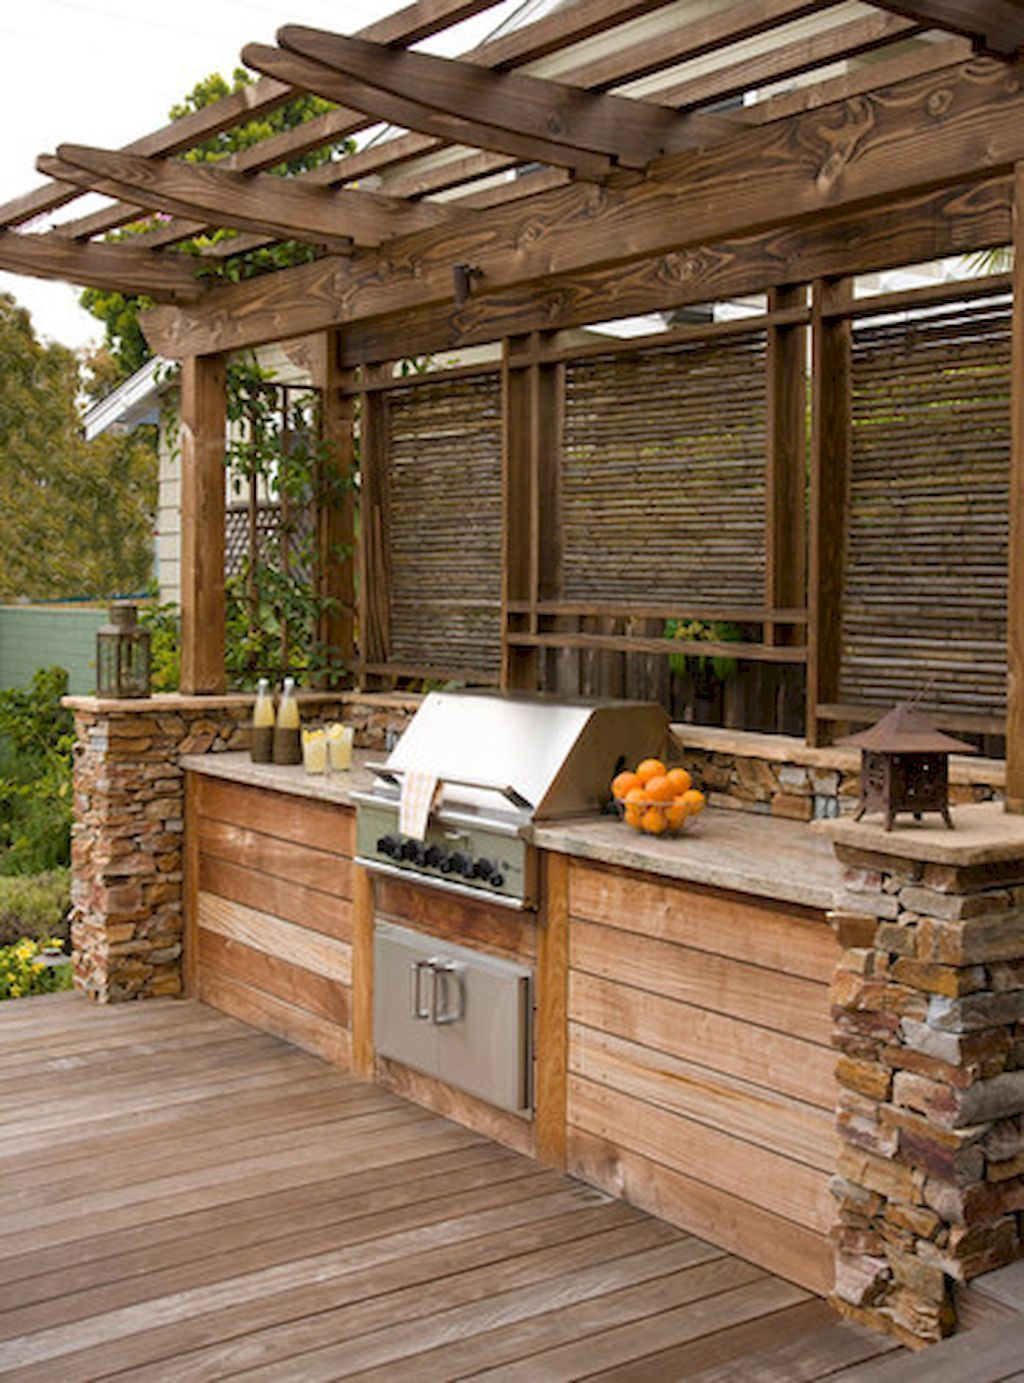 rustic outdoor kitchen dicer slicer 25 43 design and ideas for your stunning